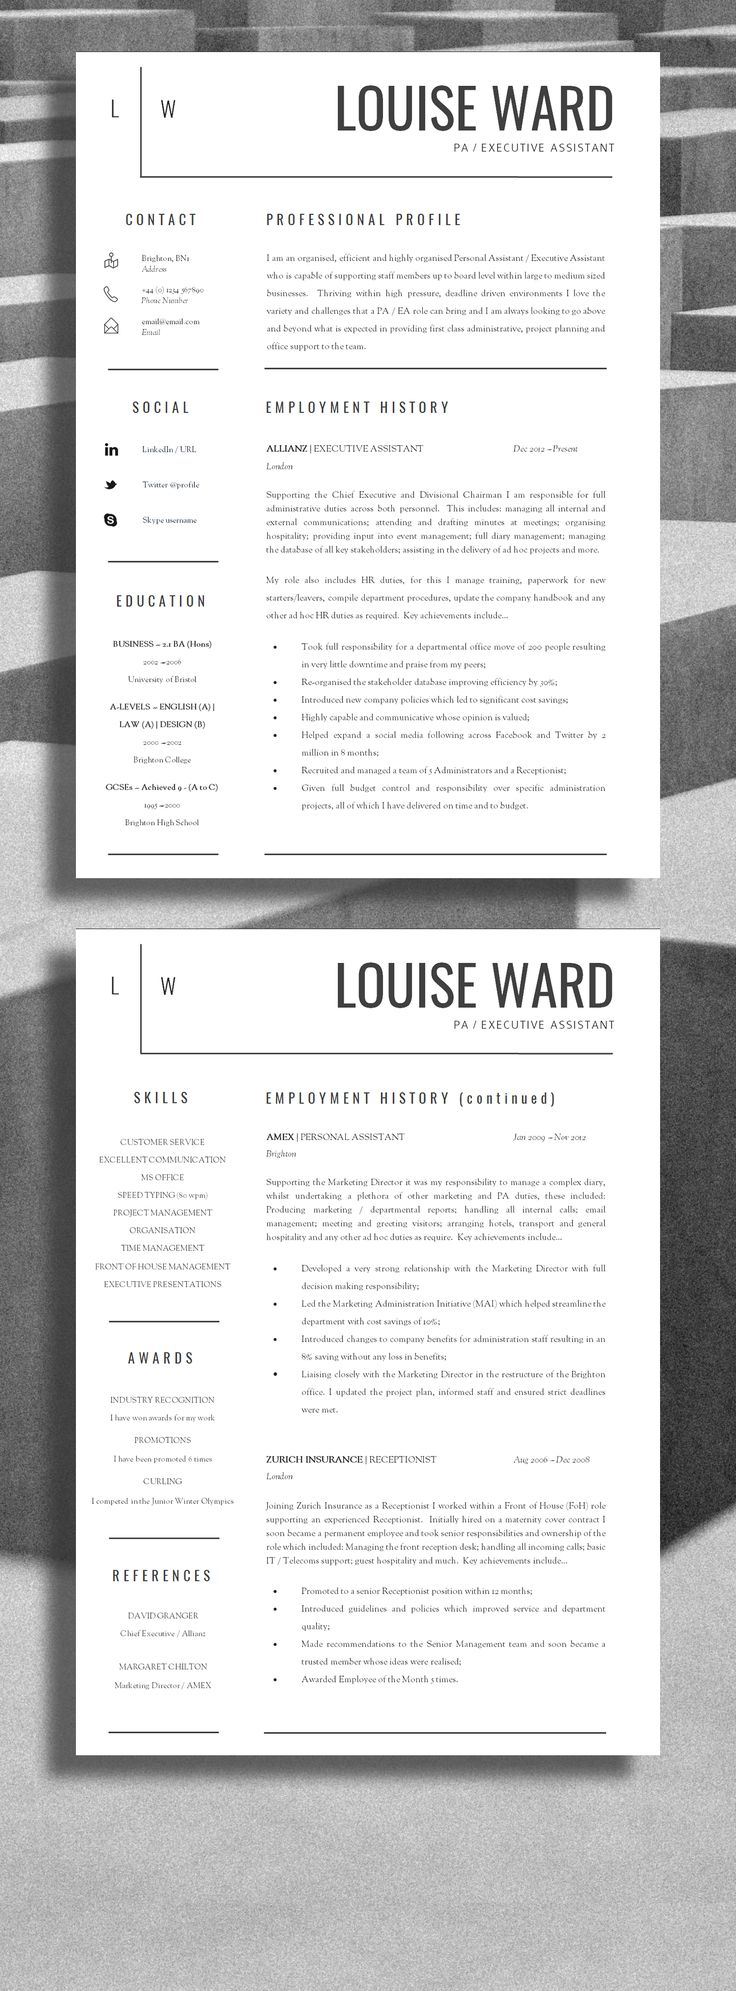 Professional Resume Design Professional CV Design